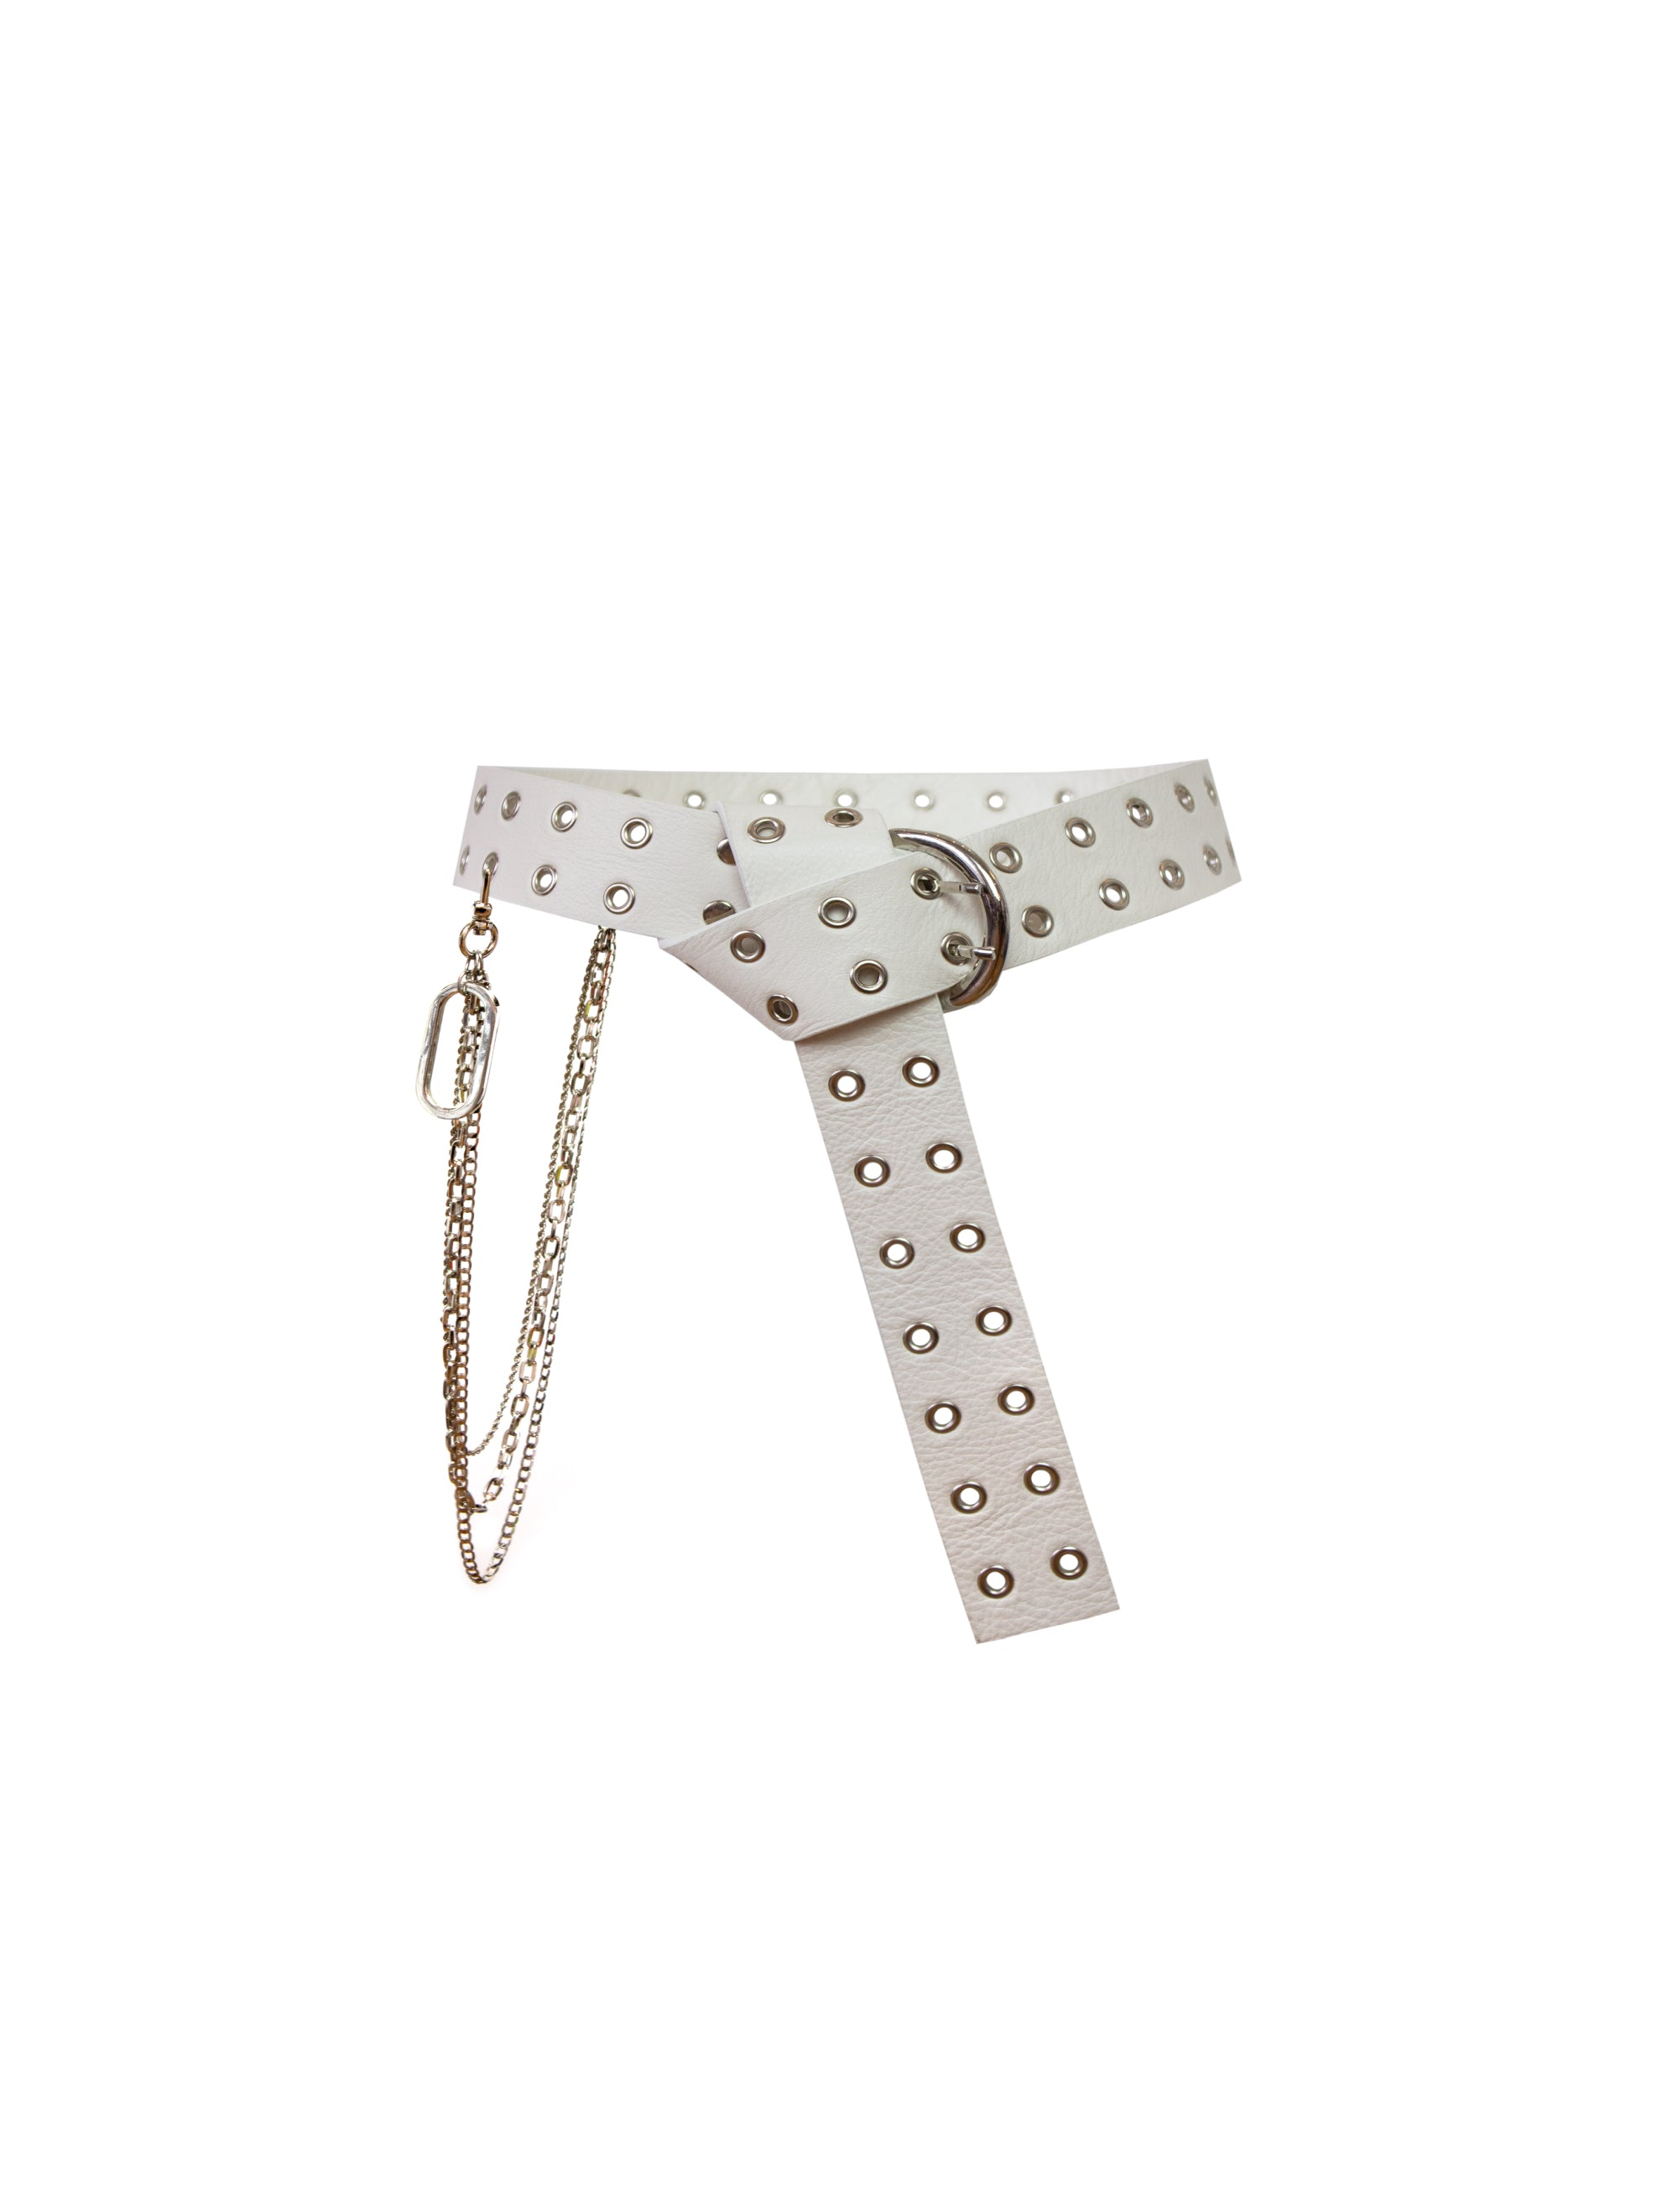 EXCLUSIVE LEATHER BELT W/ CHAIN SET OFF-WHITE